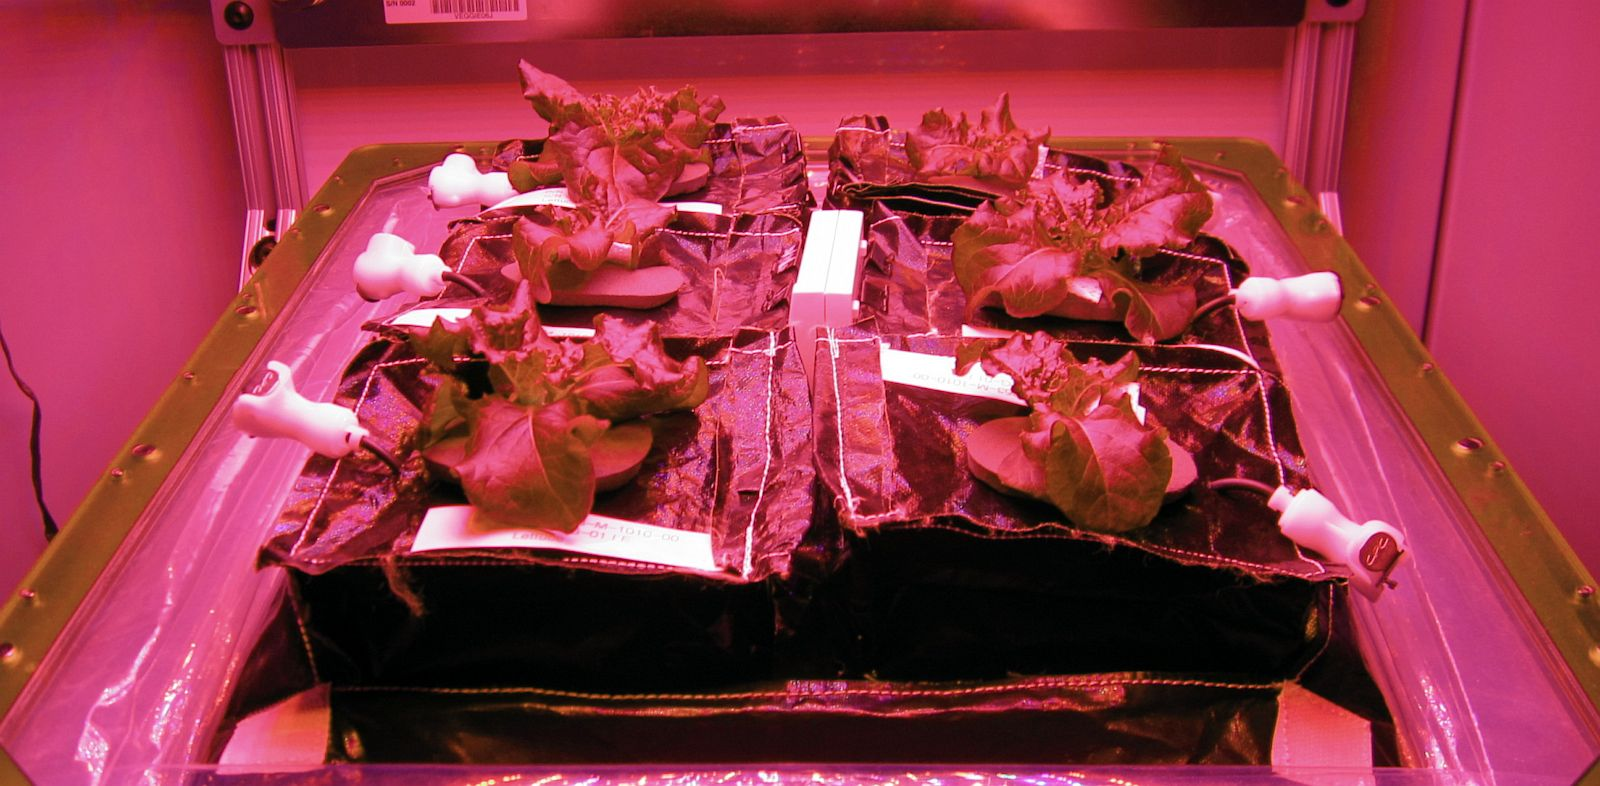 PHOTO: ISS astronauts will soon get to try their hands at gardening when VEGGIE arrives at their airlock.